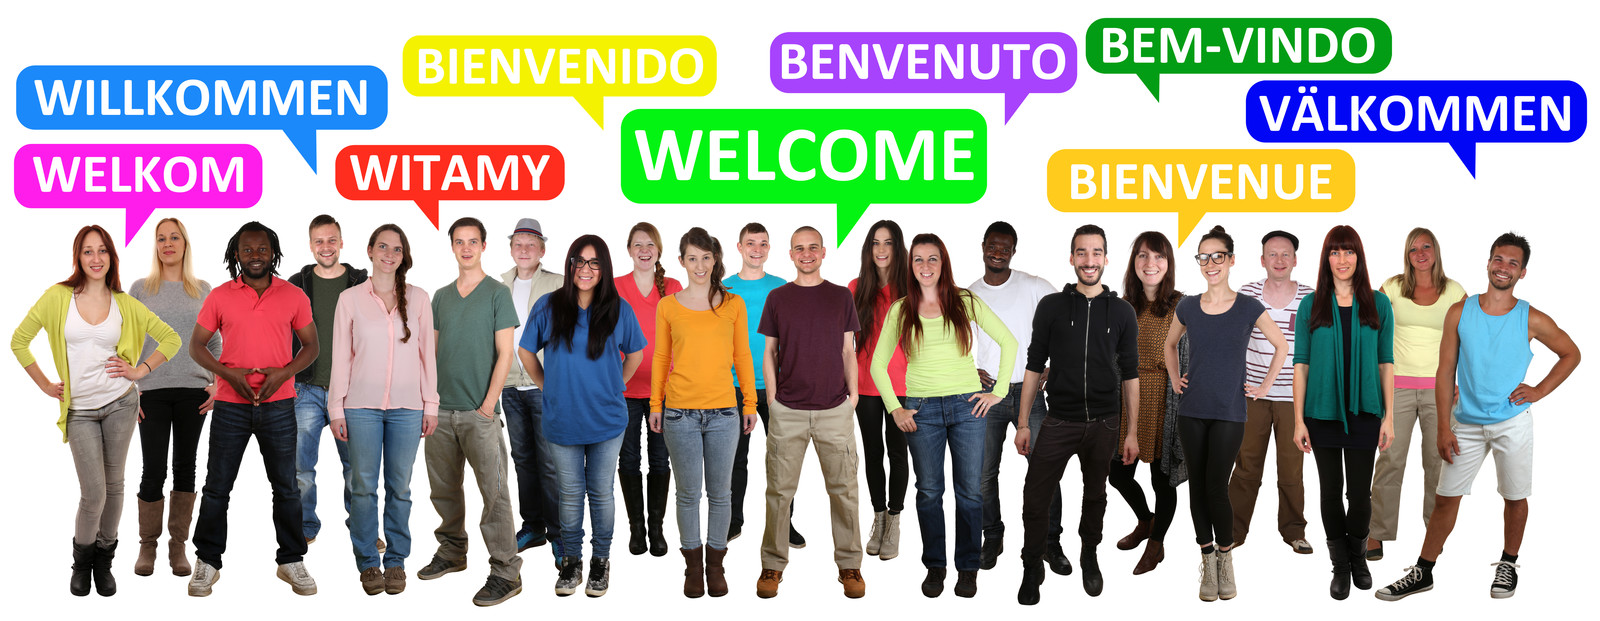 Welcome – Canstock photo 28881463